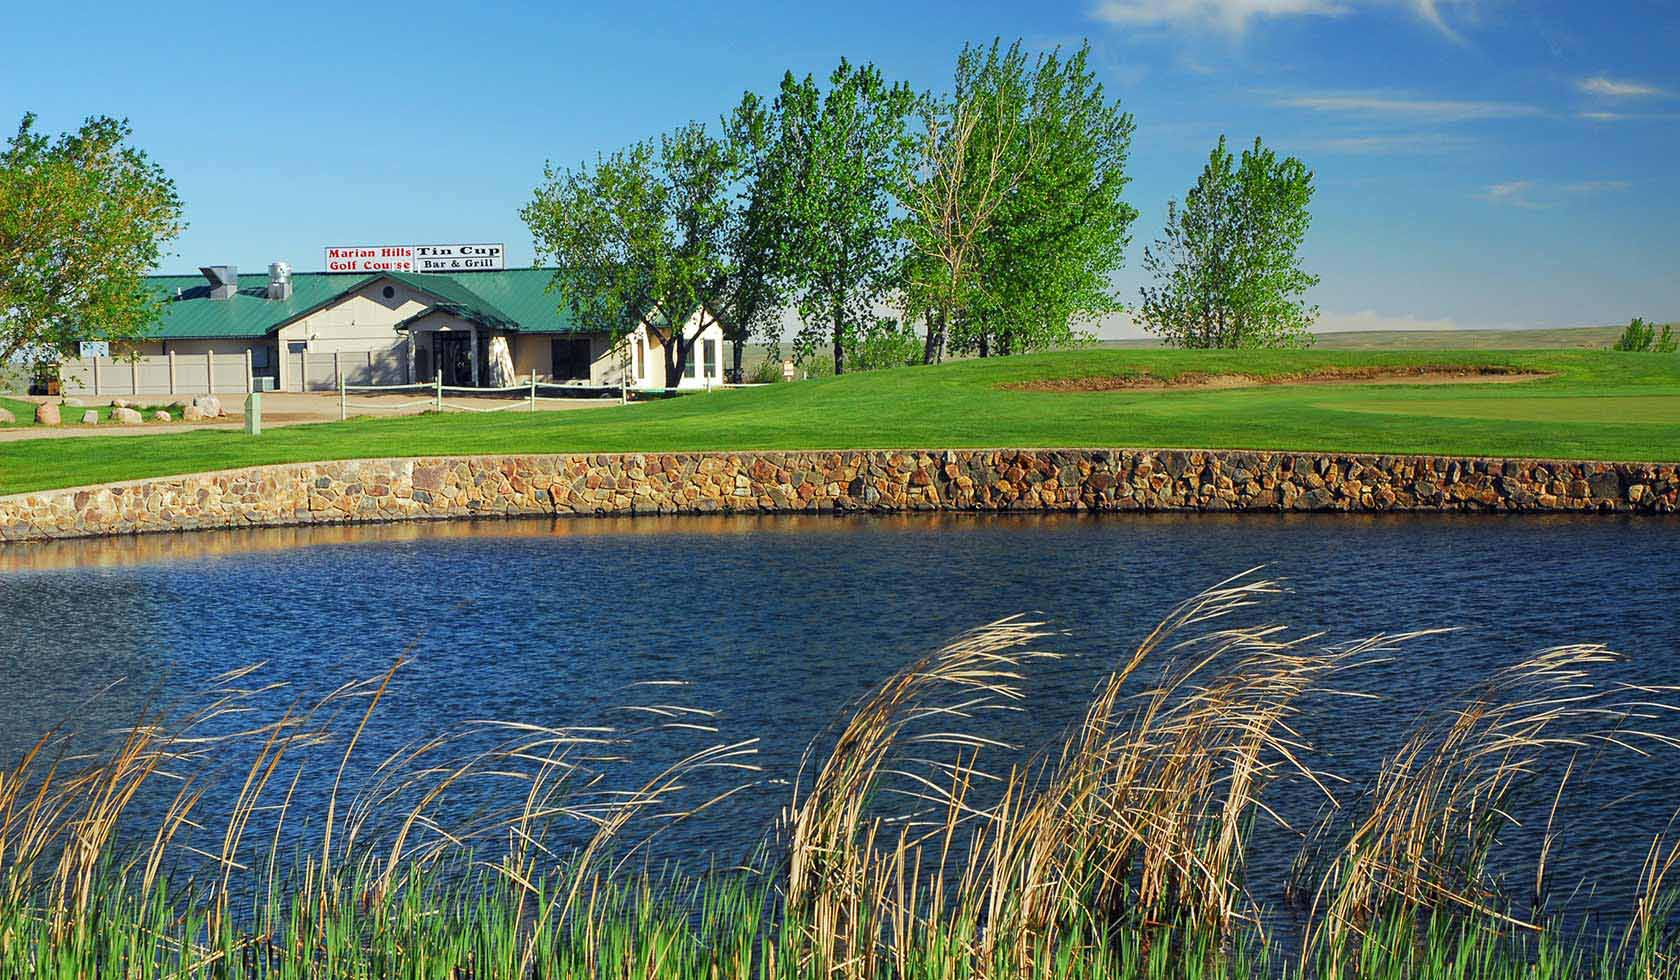 Marian Hills Country Club | Missouri River Country